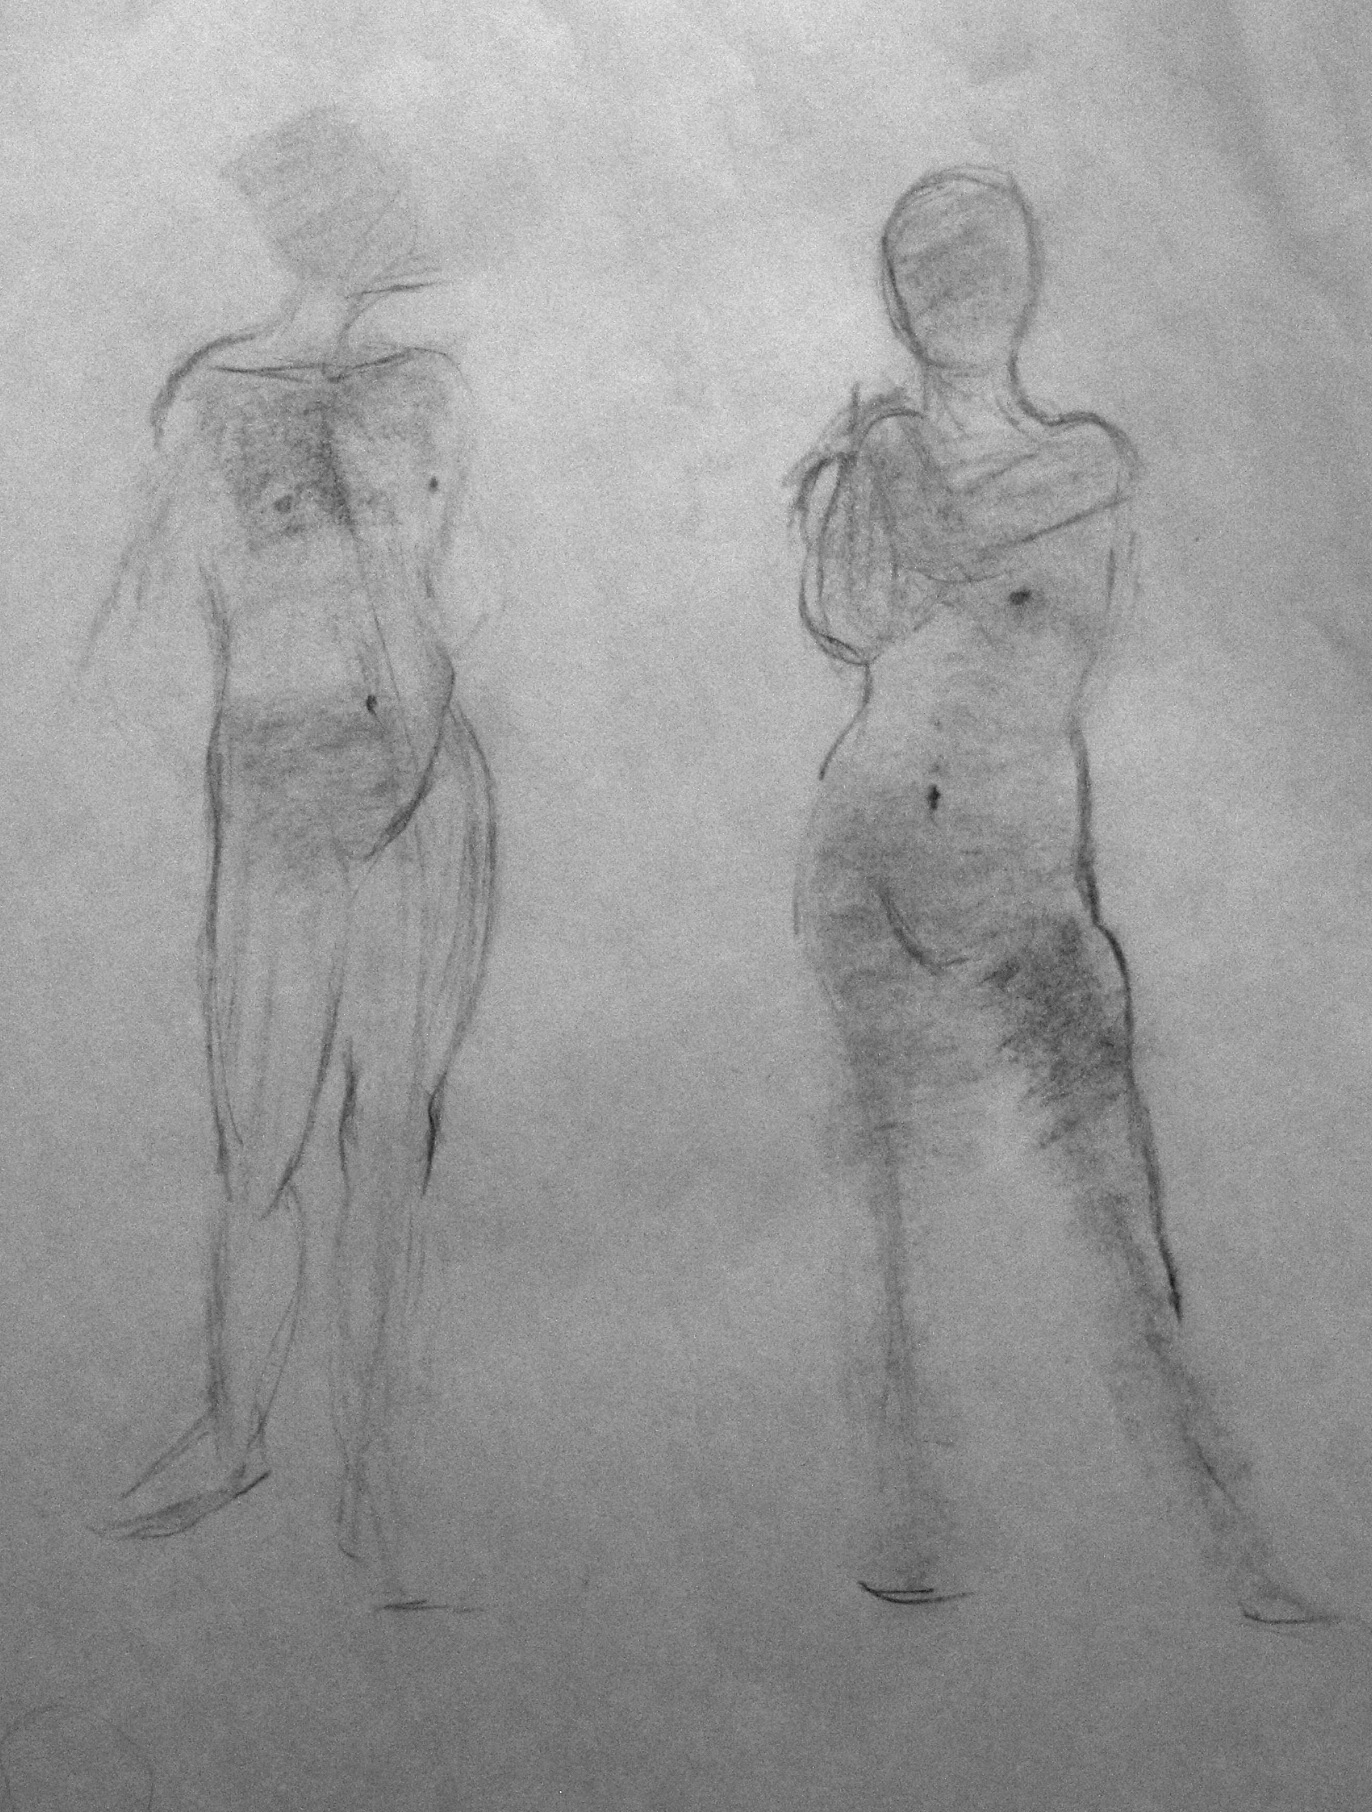 Linear and Cloudy Gestures